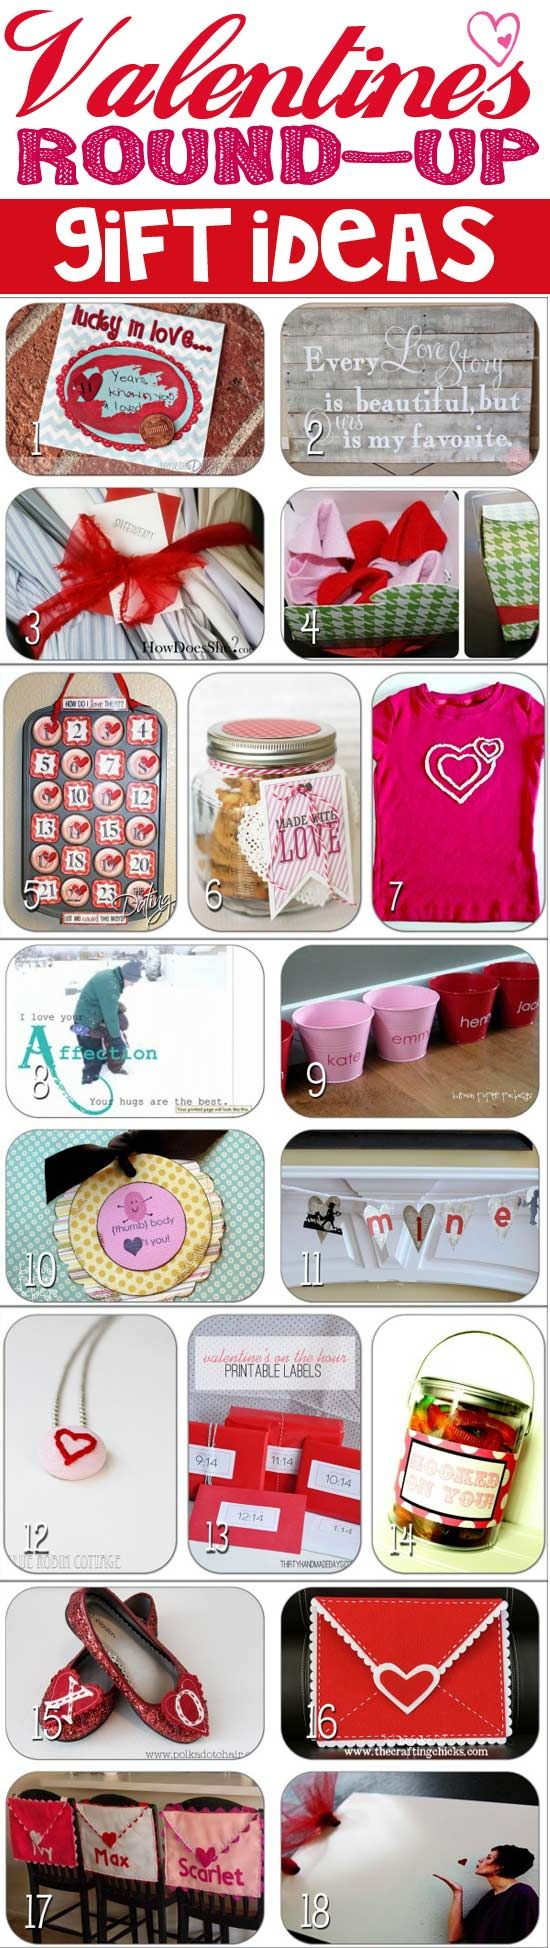 Over 20 fabulous #DIY gifts for #valentines. www.TheDatingDiva... #vday #giftidea #datingdivas